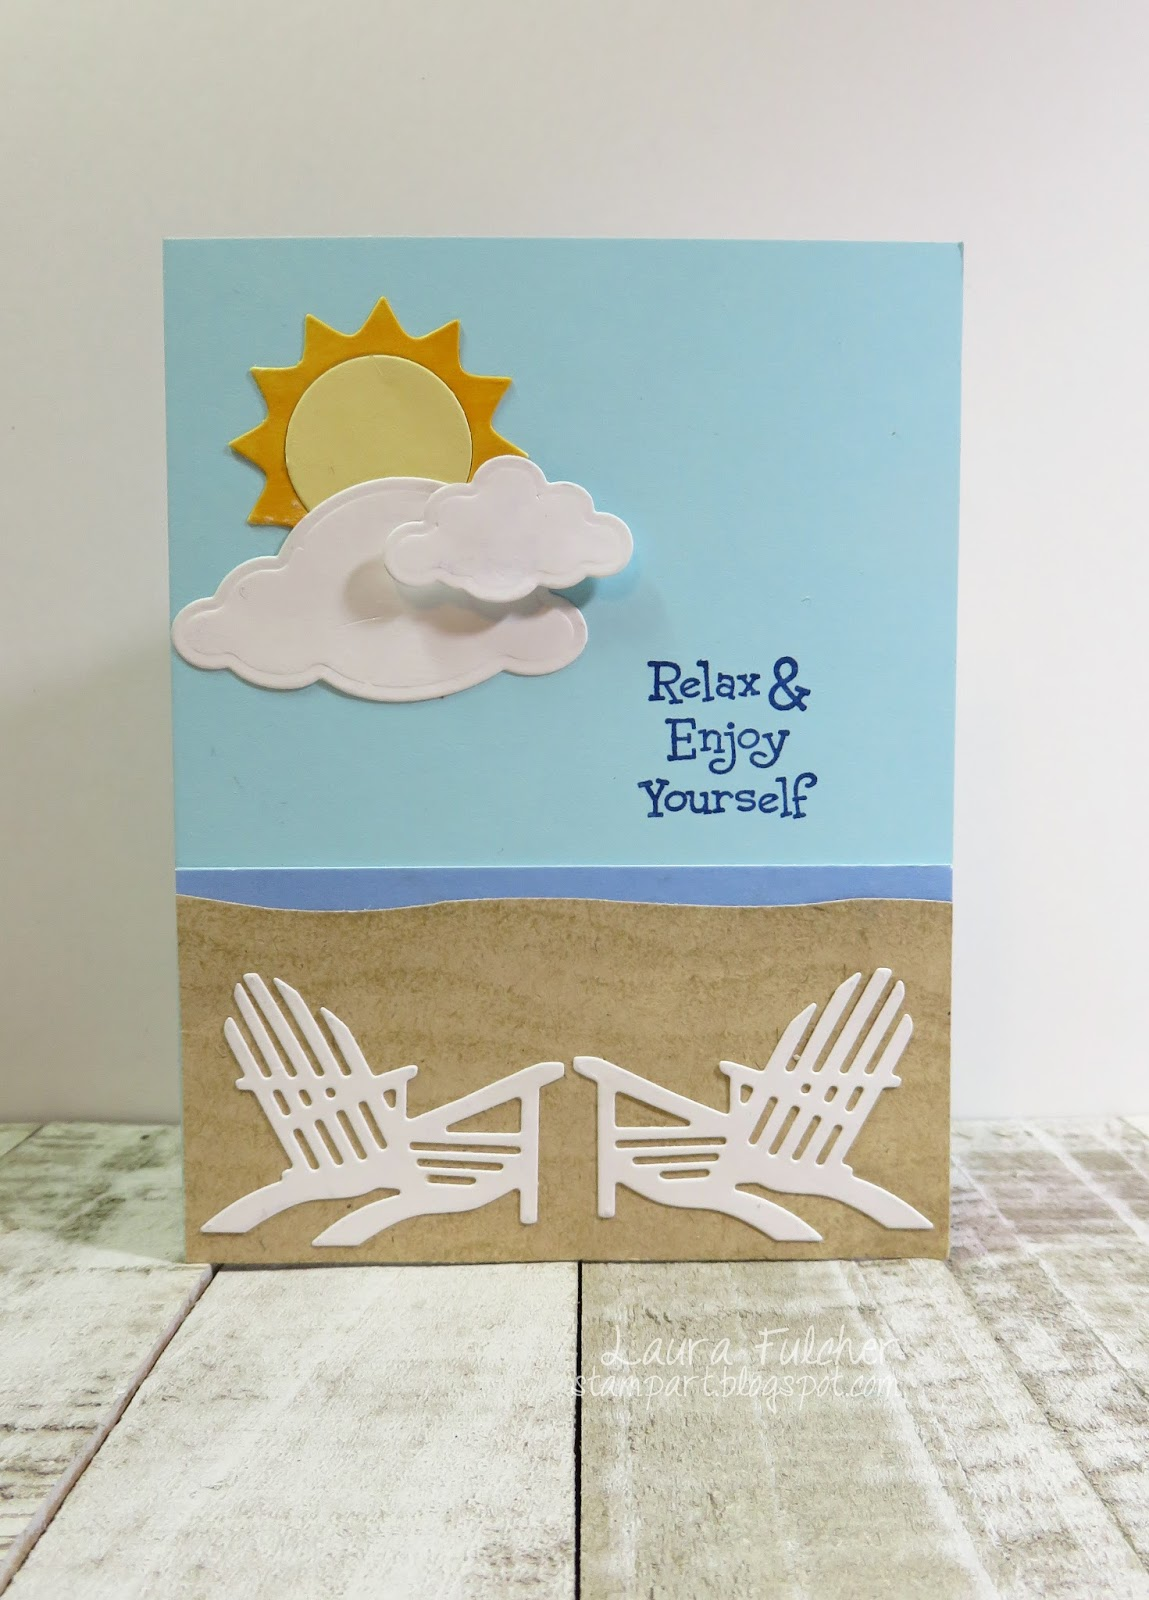 For My Moms Card I Went With A Beach Theme We Are From An Ocean Town And She Is All About The Sound Smell Sunny Days